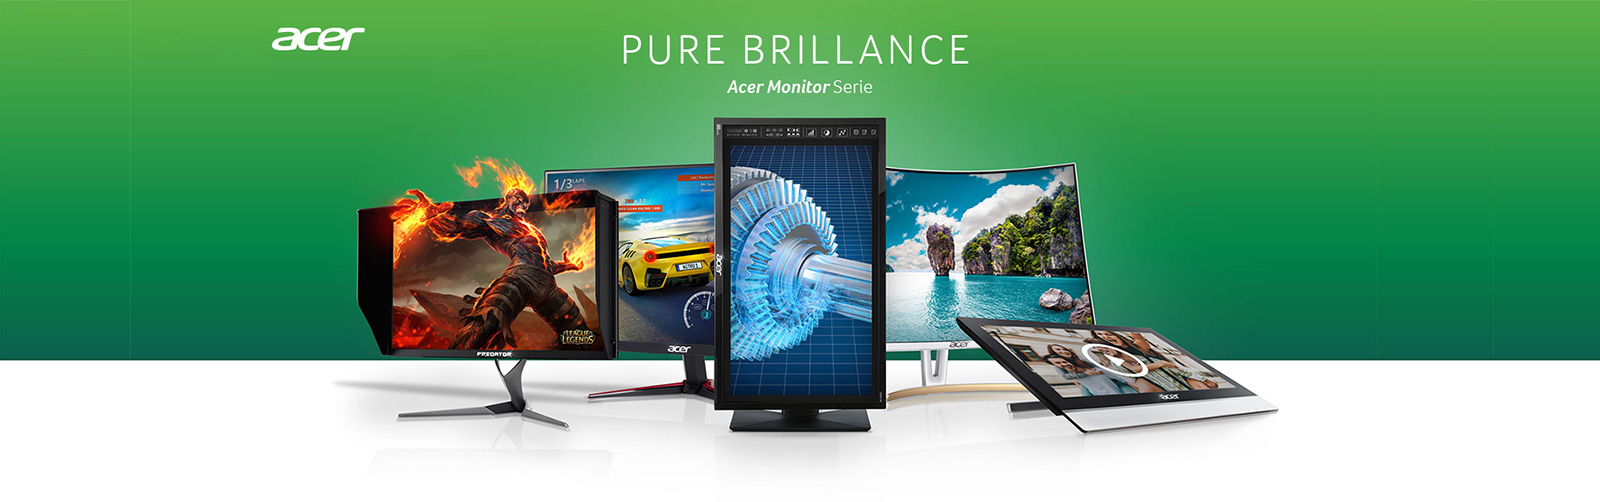 Acer Monitor Serie